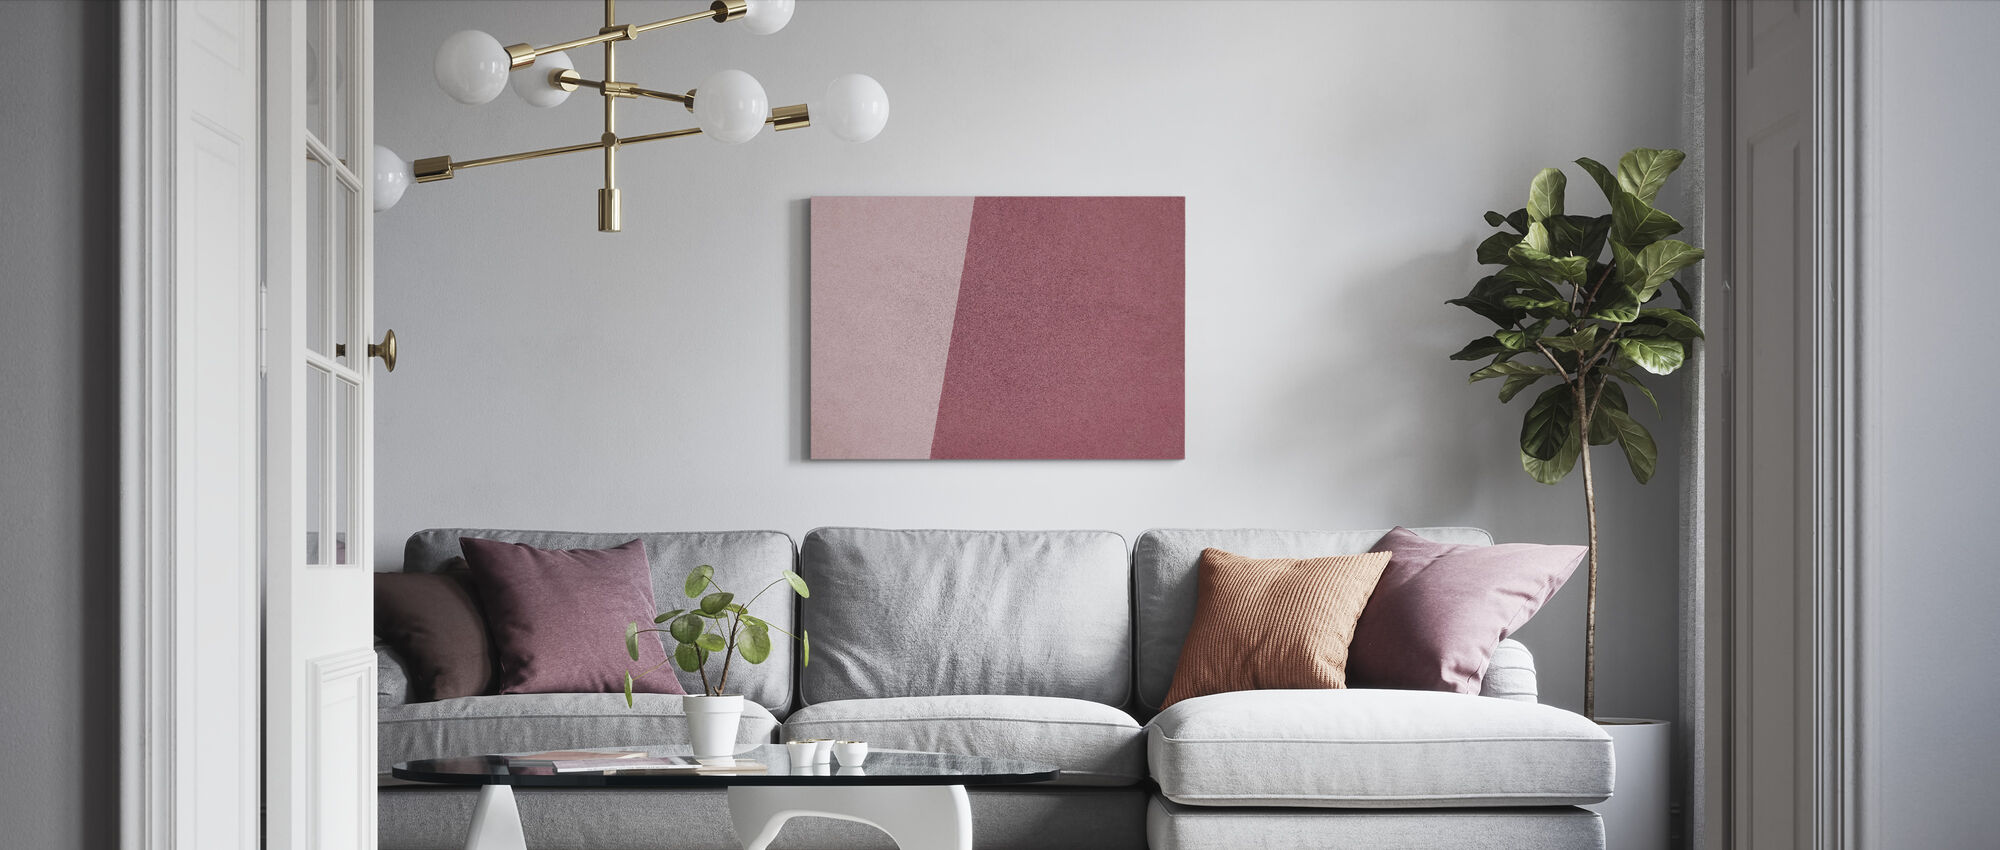 Pink Wall Art - Canvas print - Living Room